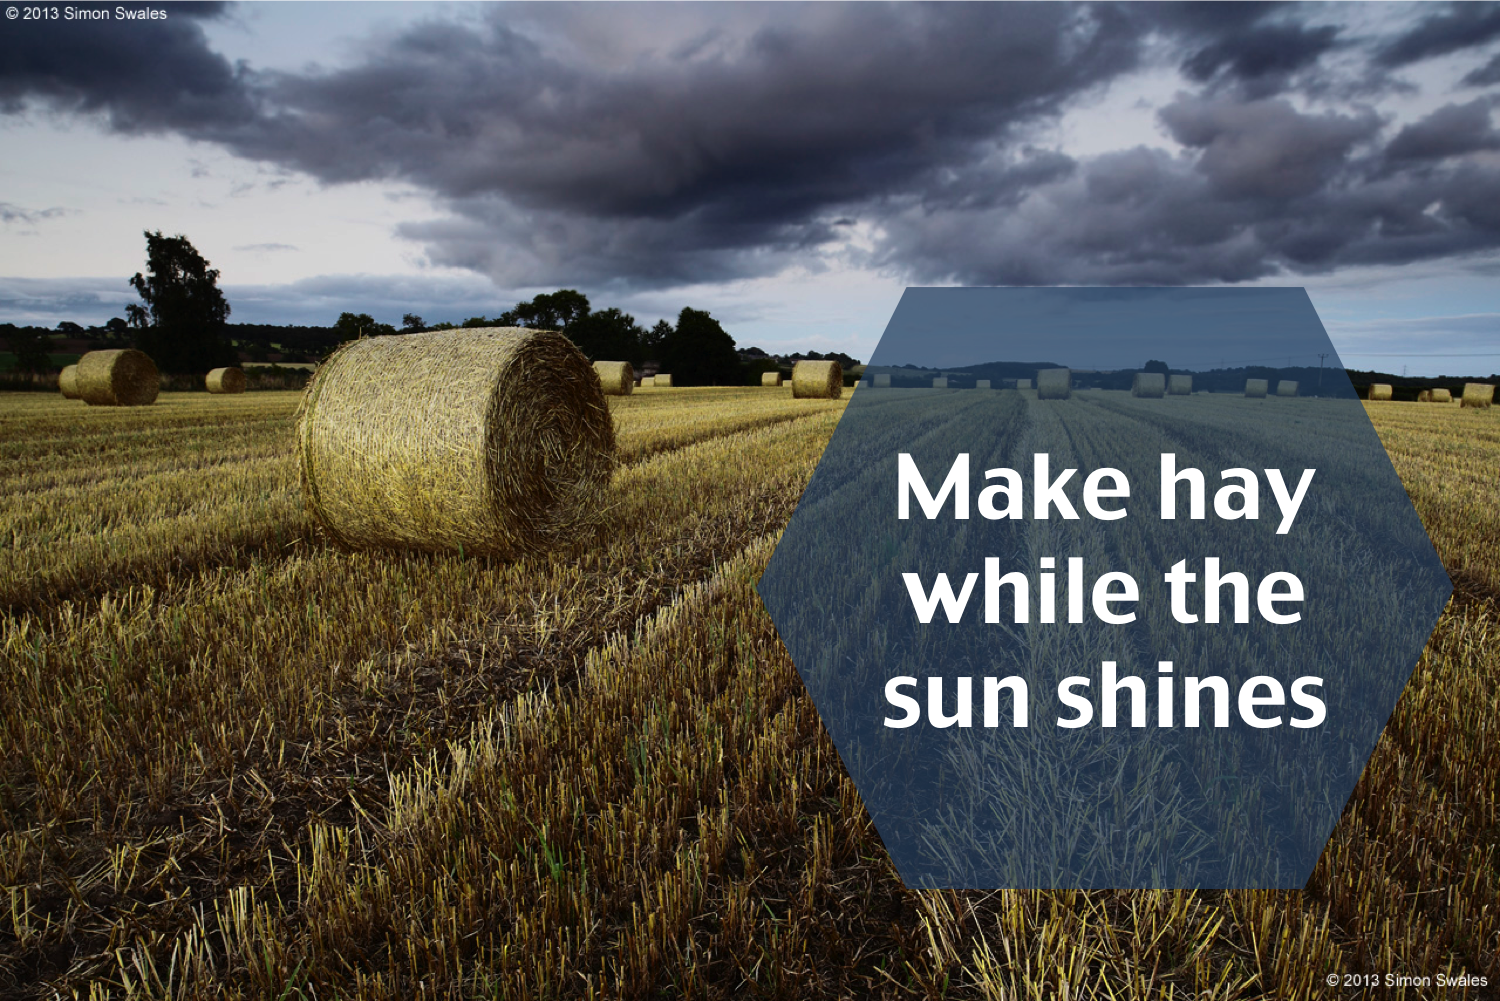 essay for proverb make hay while the sun shines Reg no :  20 (a) write an essay on the proverb 'make hay while the sun shines' or (b) write an essay on the proverb 'unity is.